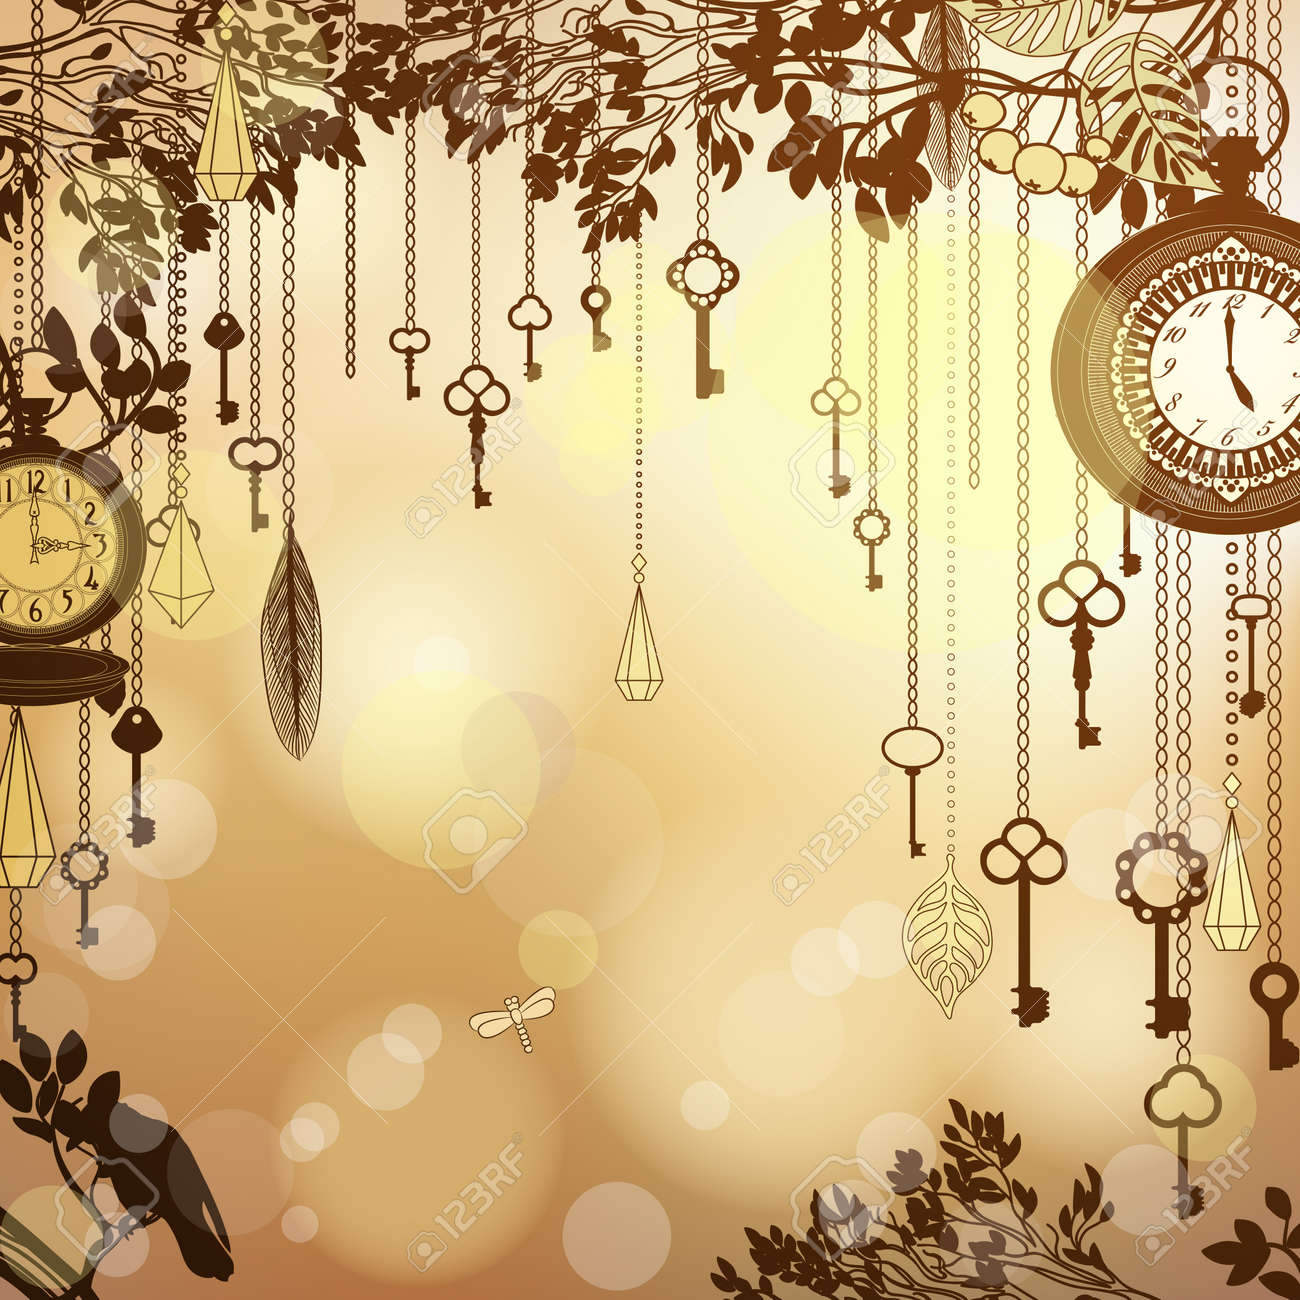 Antique Golden Background With Clocks And Keys Stock Vector